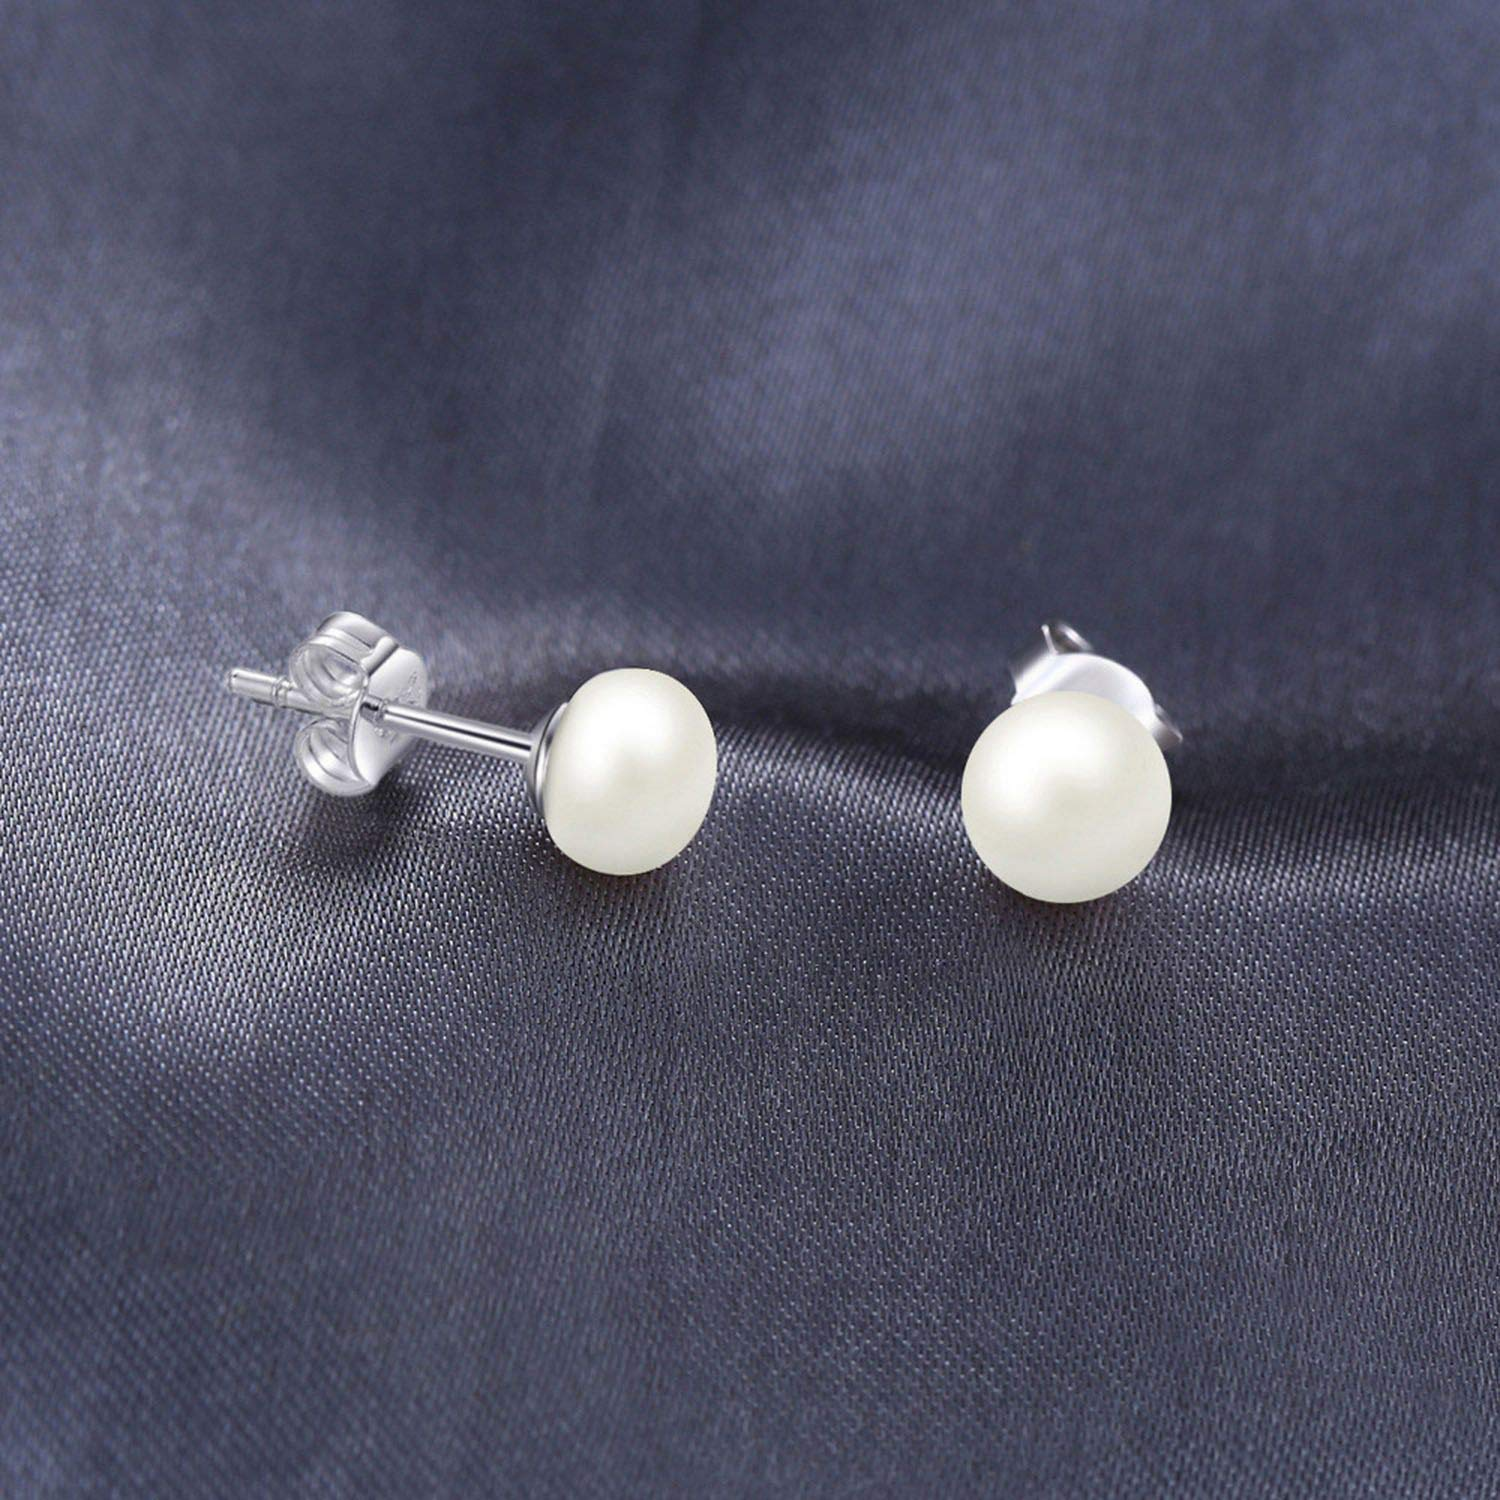 Natural Round Freshwater Pearl Stud Earrings Silver Earrings Jewelry For Women Girls Ladies